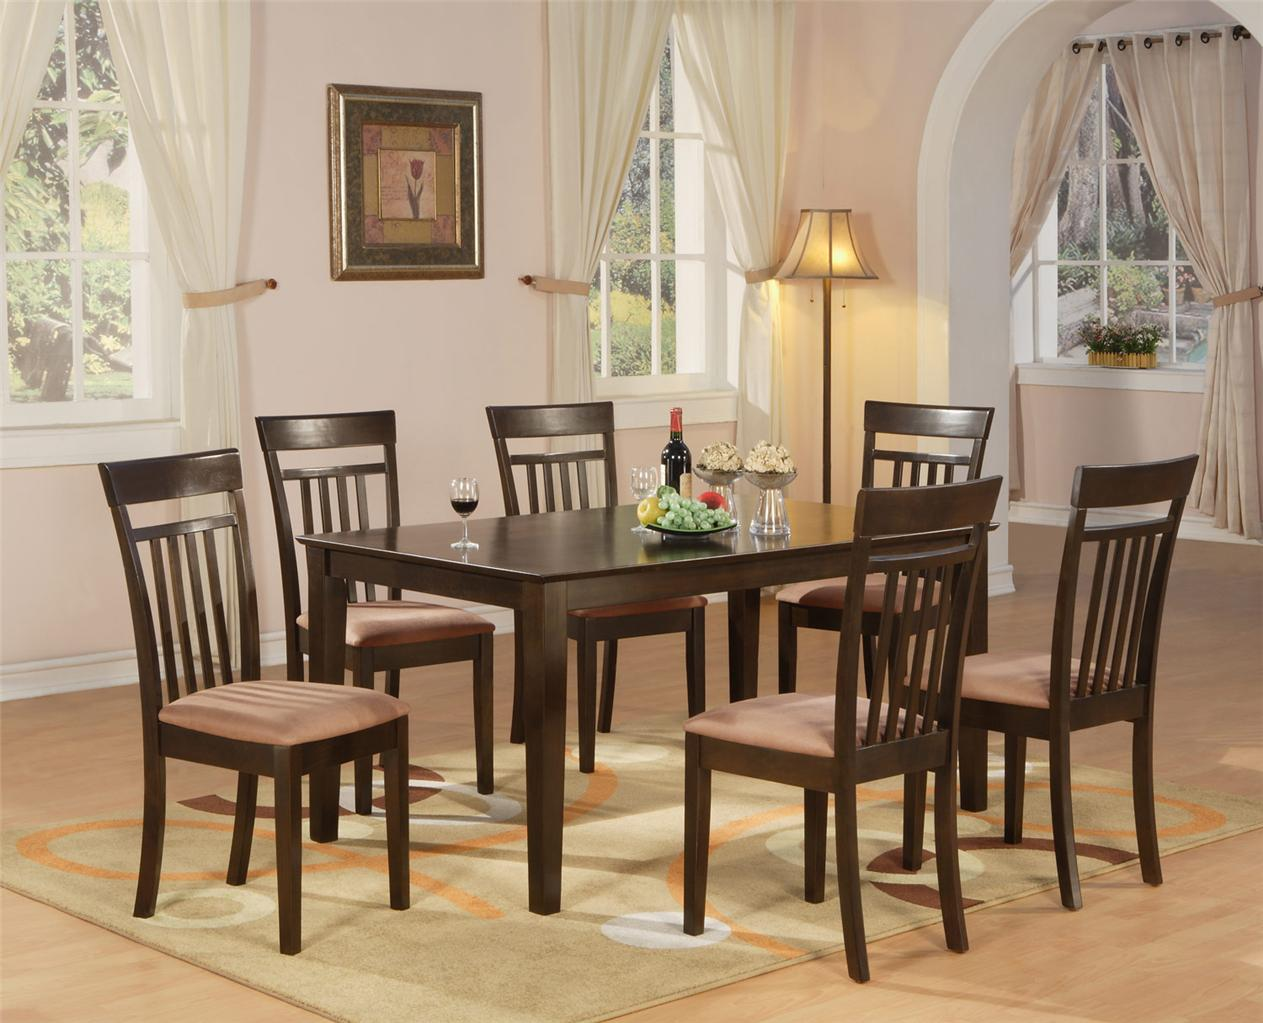 7 pc dining room dinette kitchen set table and 6 chairs ebay for Kitchen dinette sets